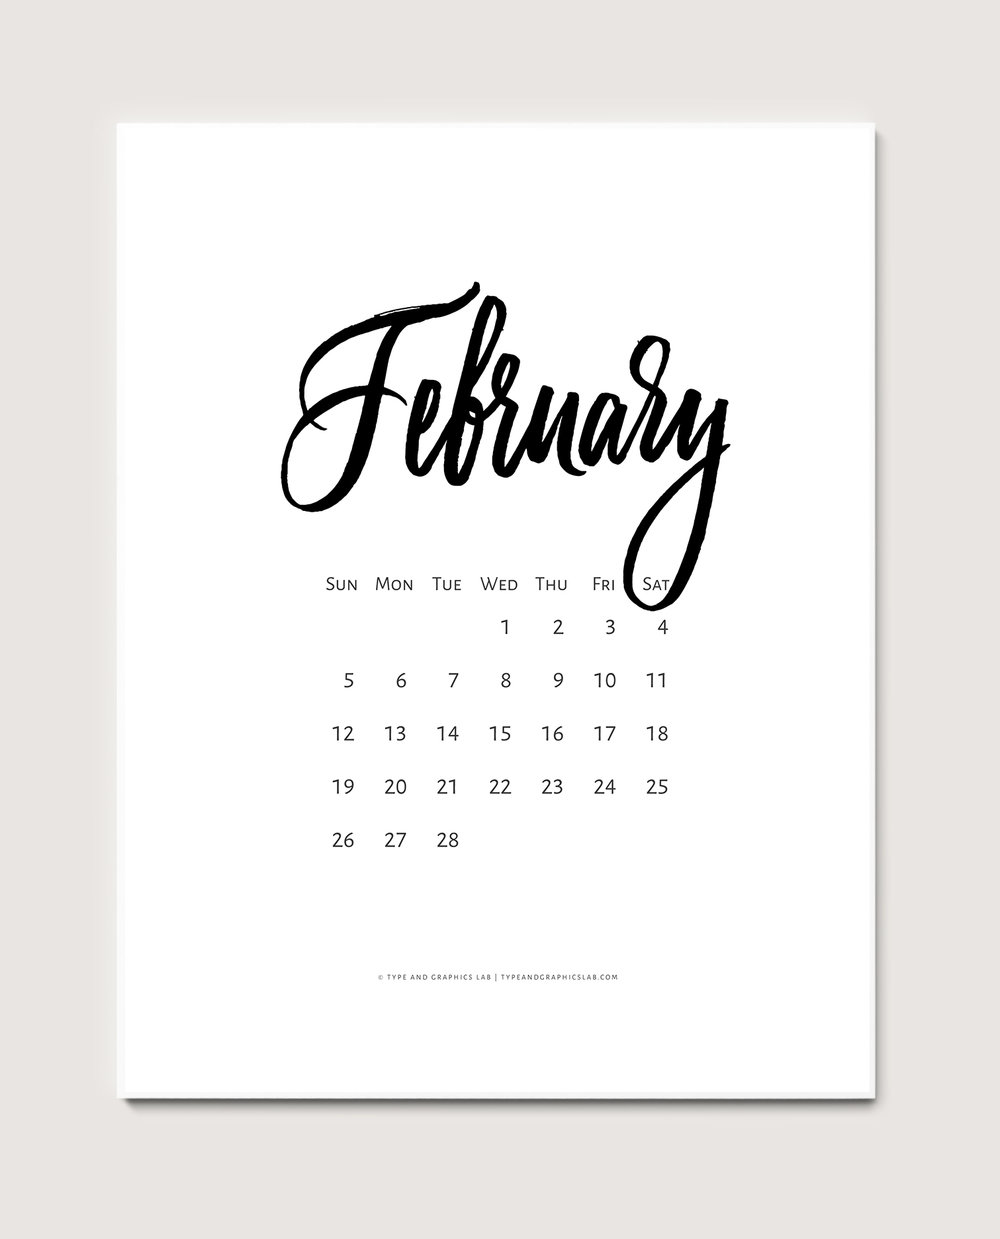 Download a free printable calendar for February 2017 | © typeandgraphicslab.com | For personal use only